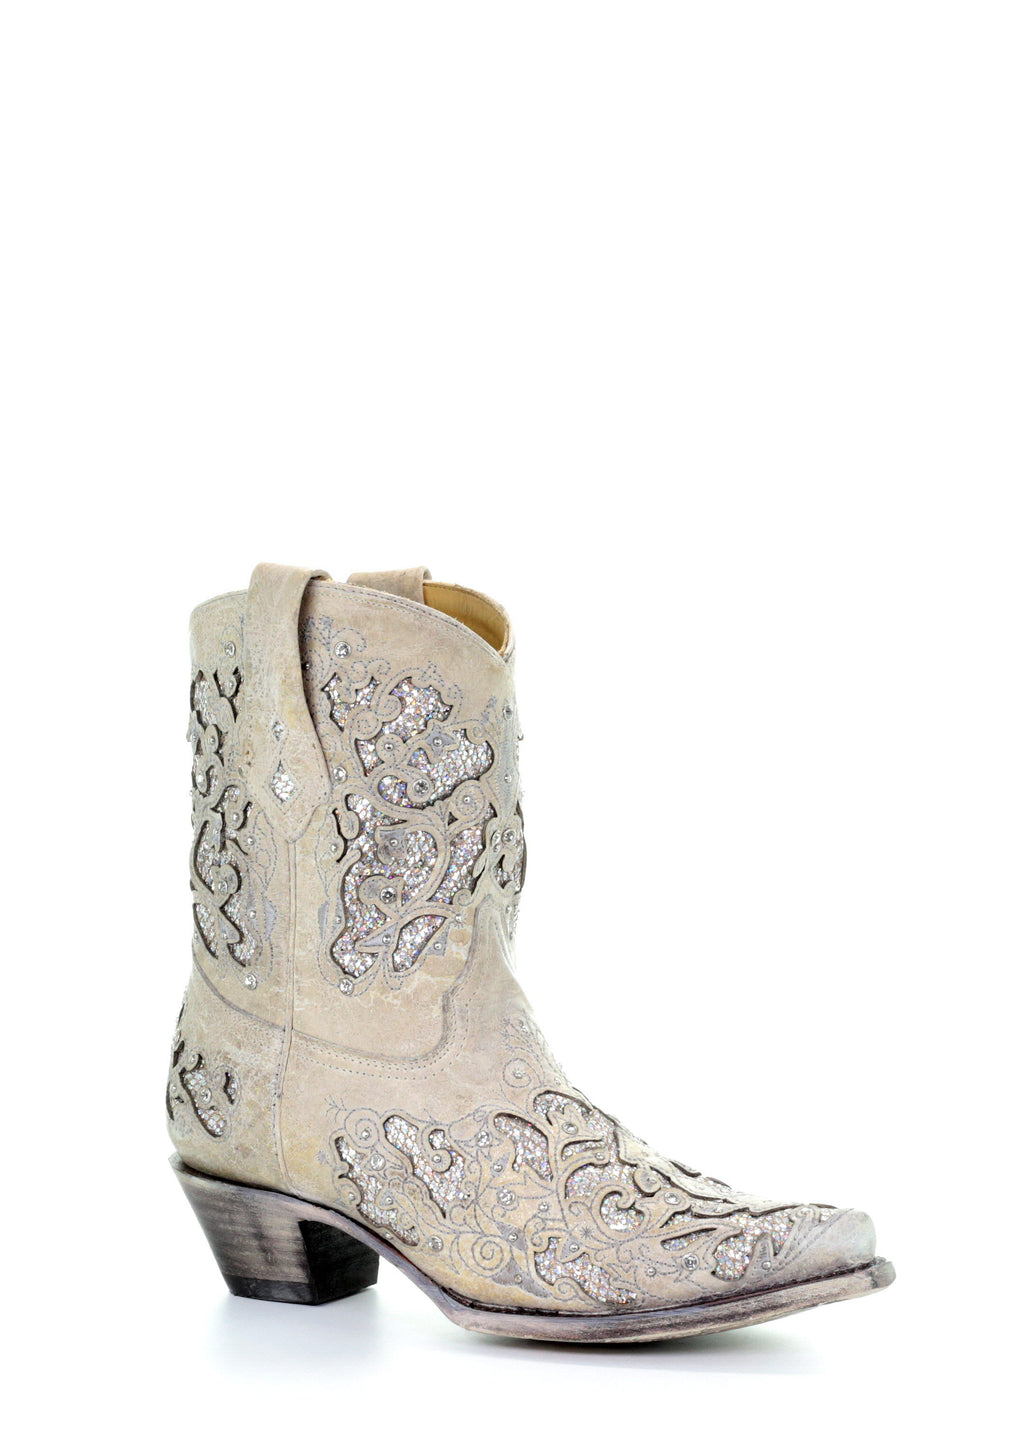 Corral White Glitter Inlay & Crystals Ankle Boots A3550